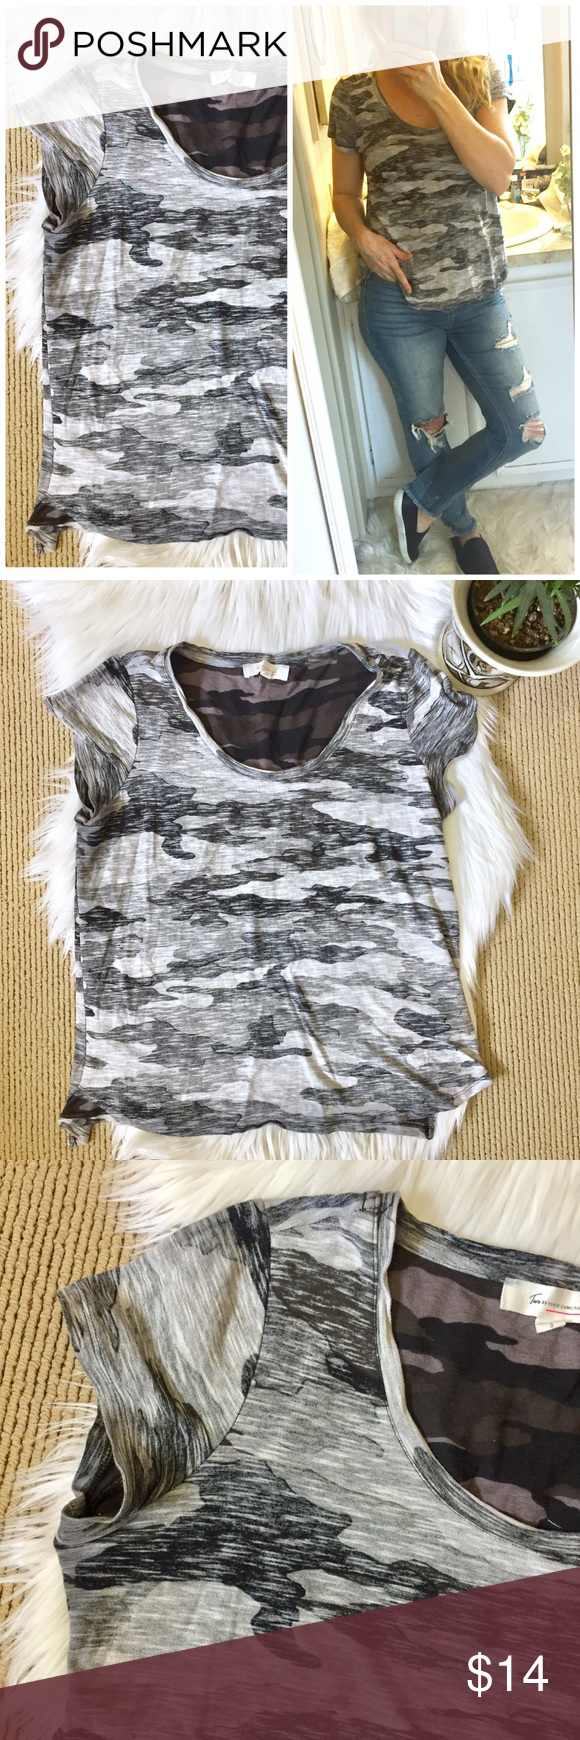 """20a1f30e4 Two Vince Camuto Camo Tee Black and gray camouflage jersey short sleeved t- shirt. Slightly relaxed fit.▫️Size Small ▫️19"""" flat across bust and 22.5""""  ..."""